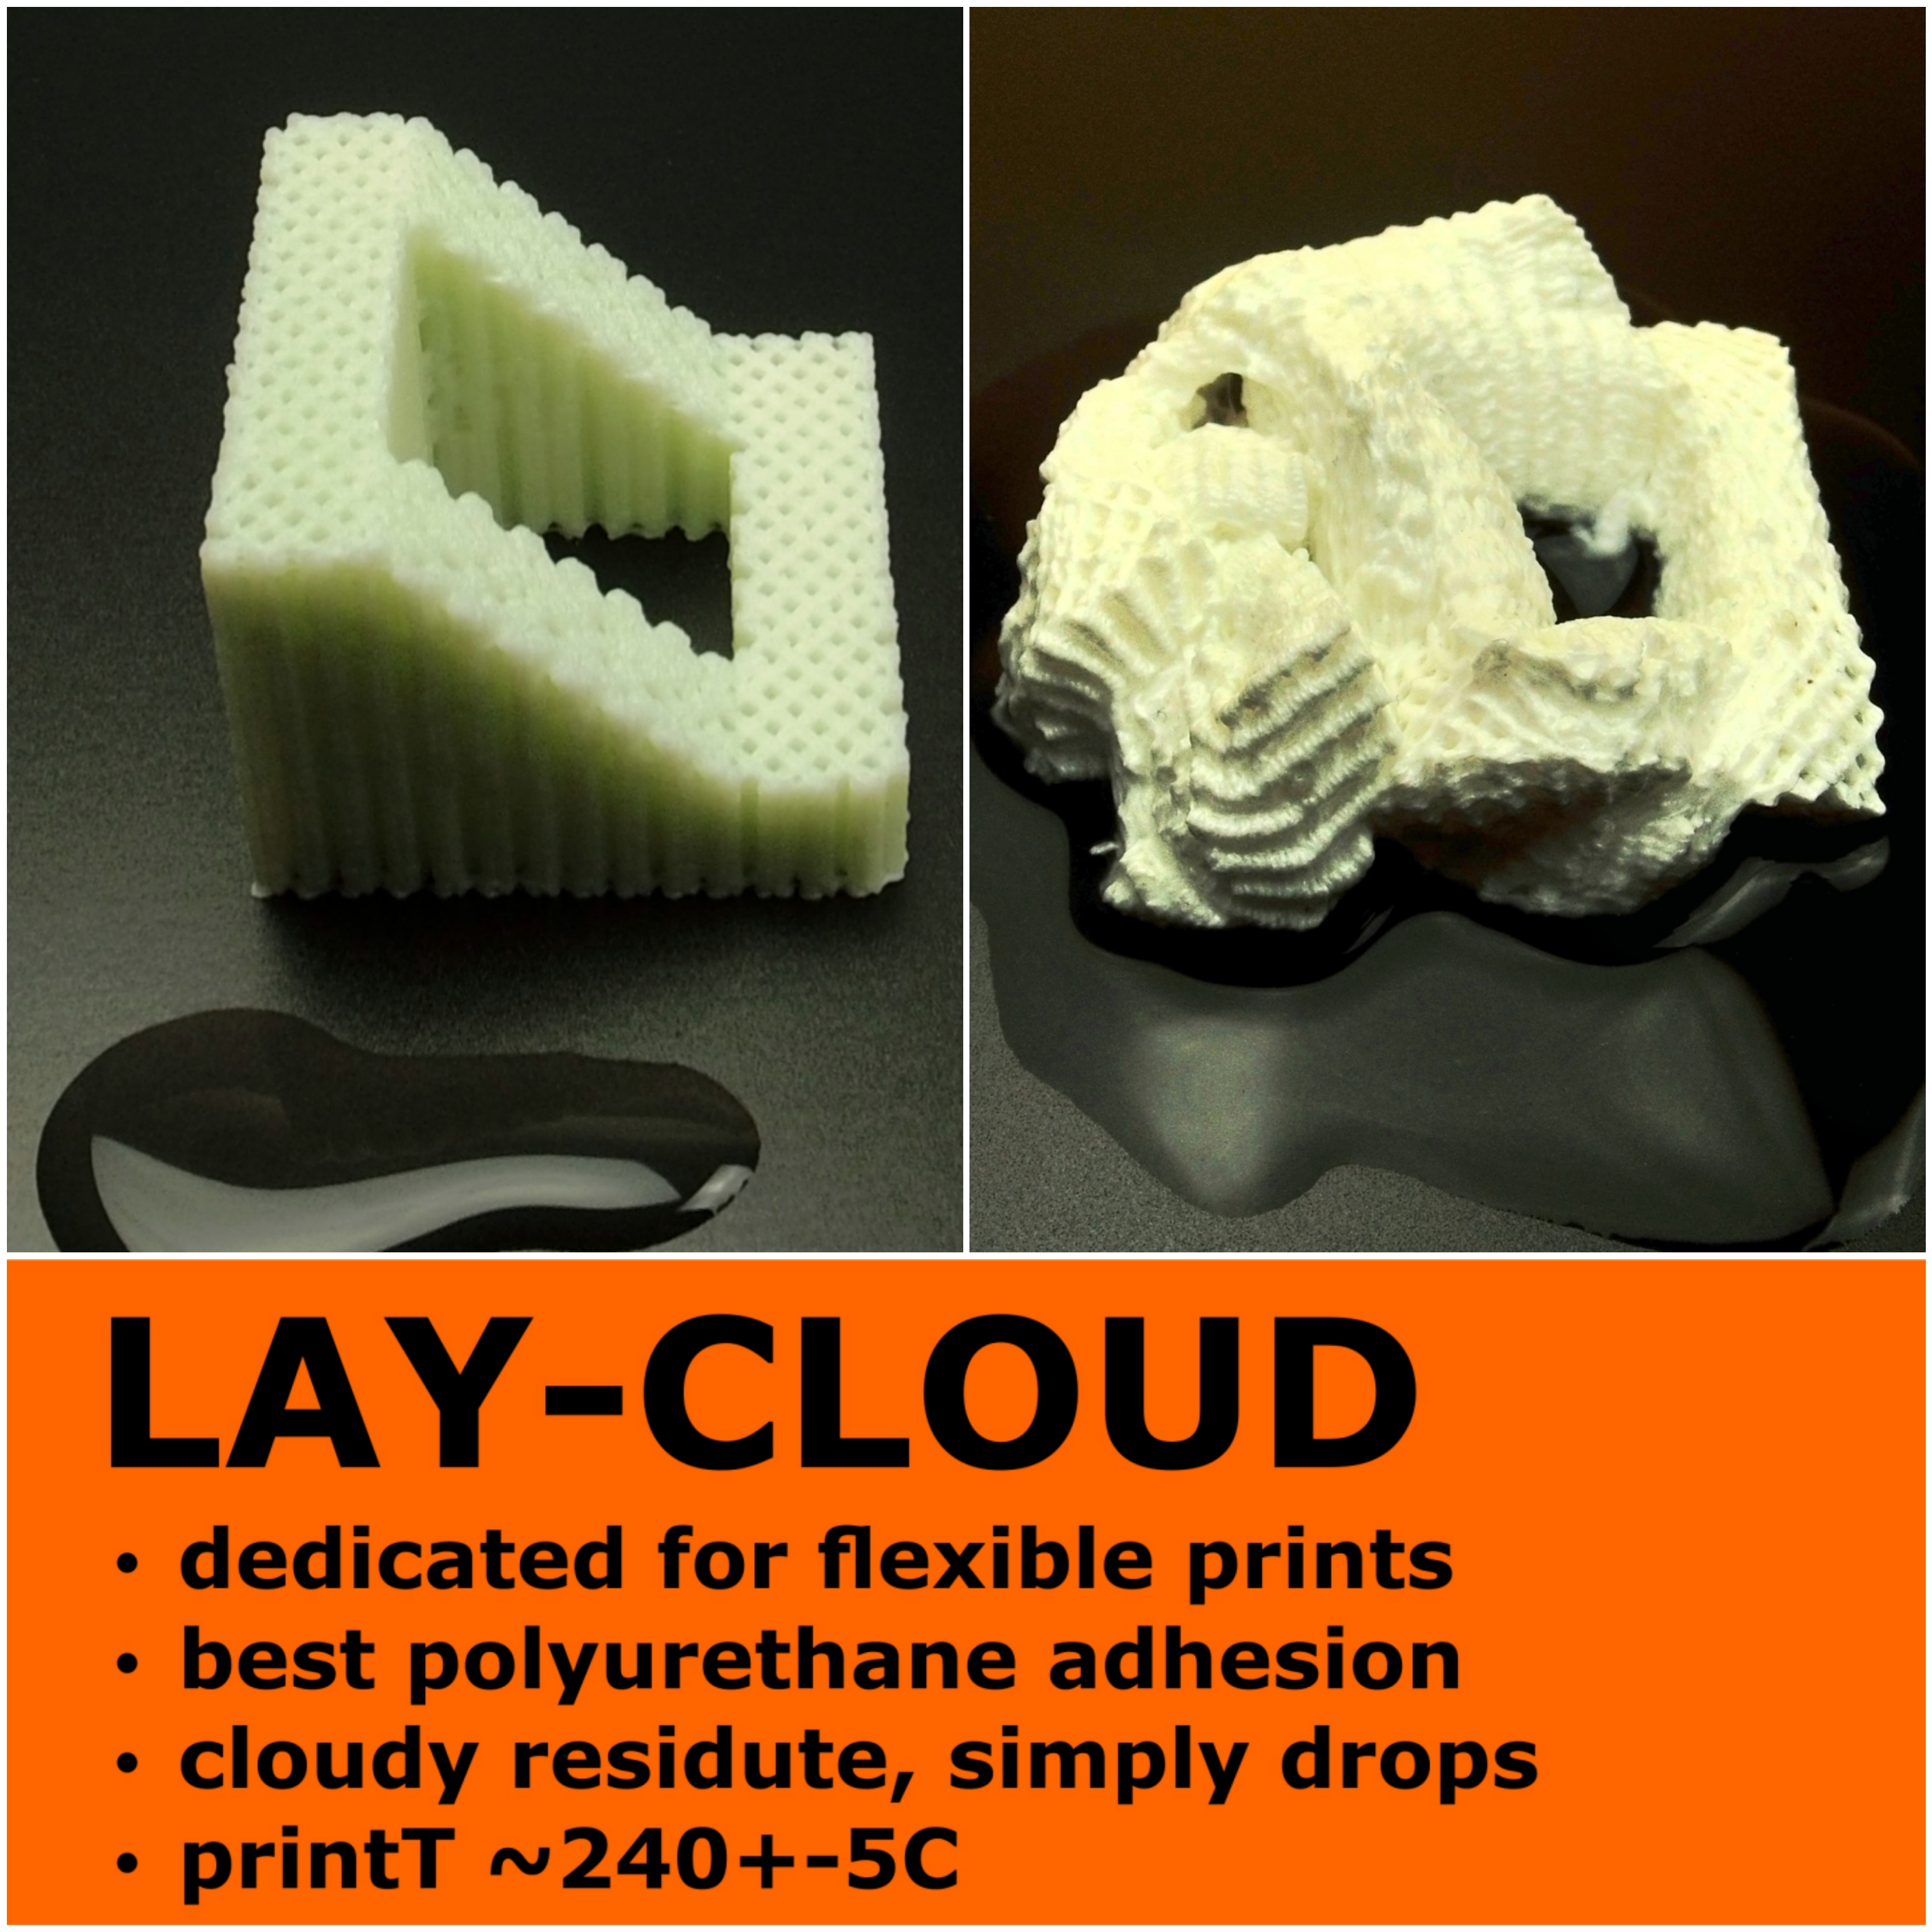 layaway-cloud_filament_support_structures_kai_parthy